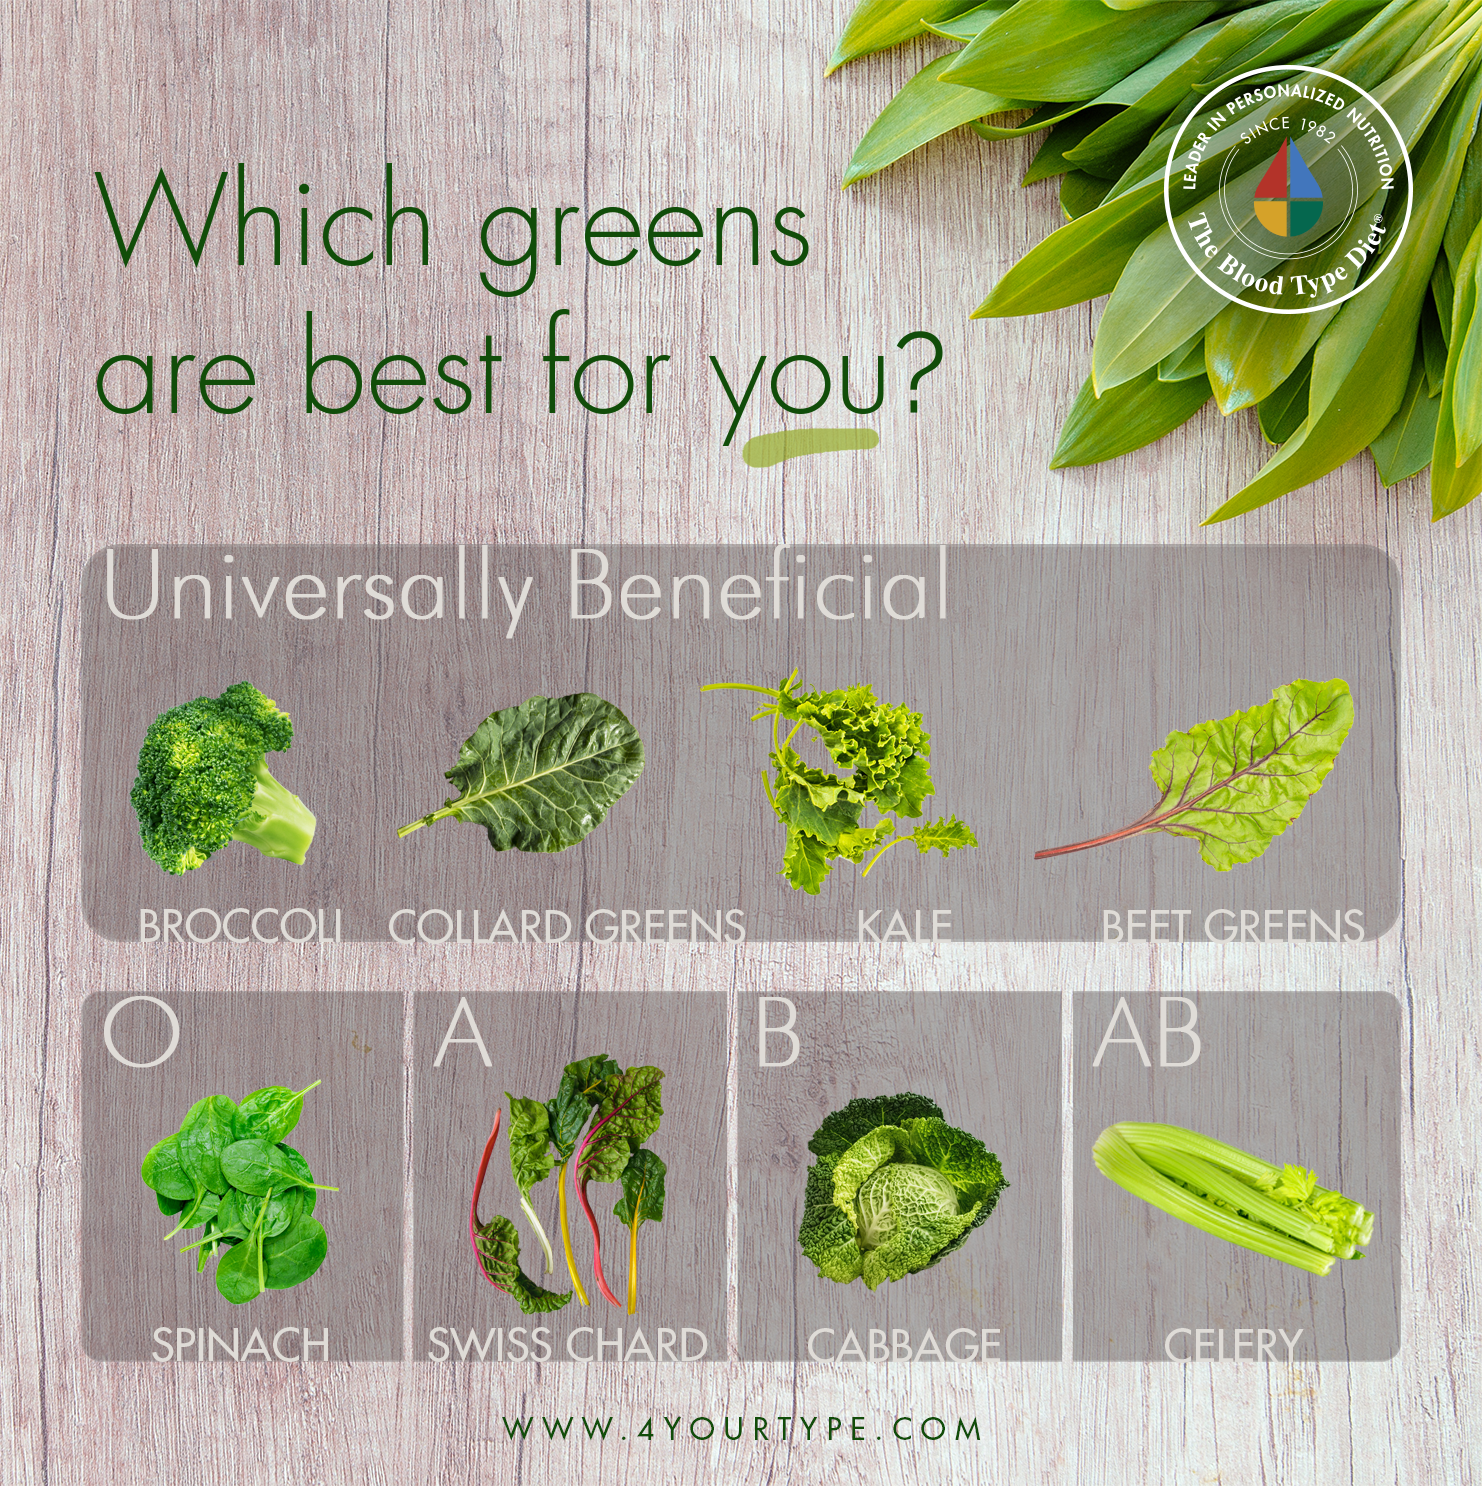 Are you eating the best greens for you?